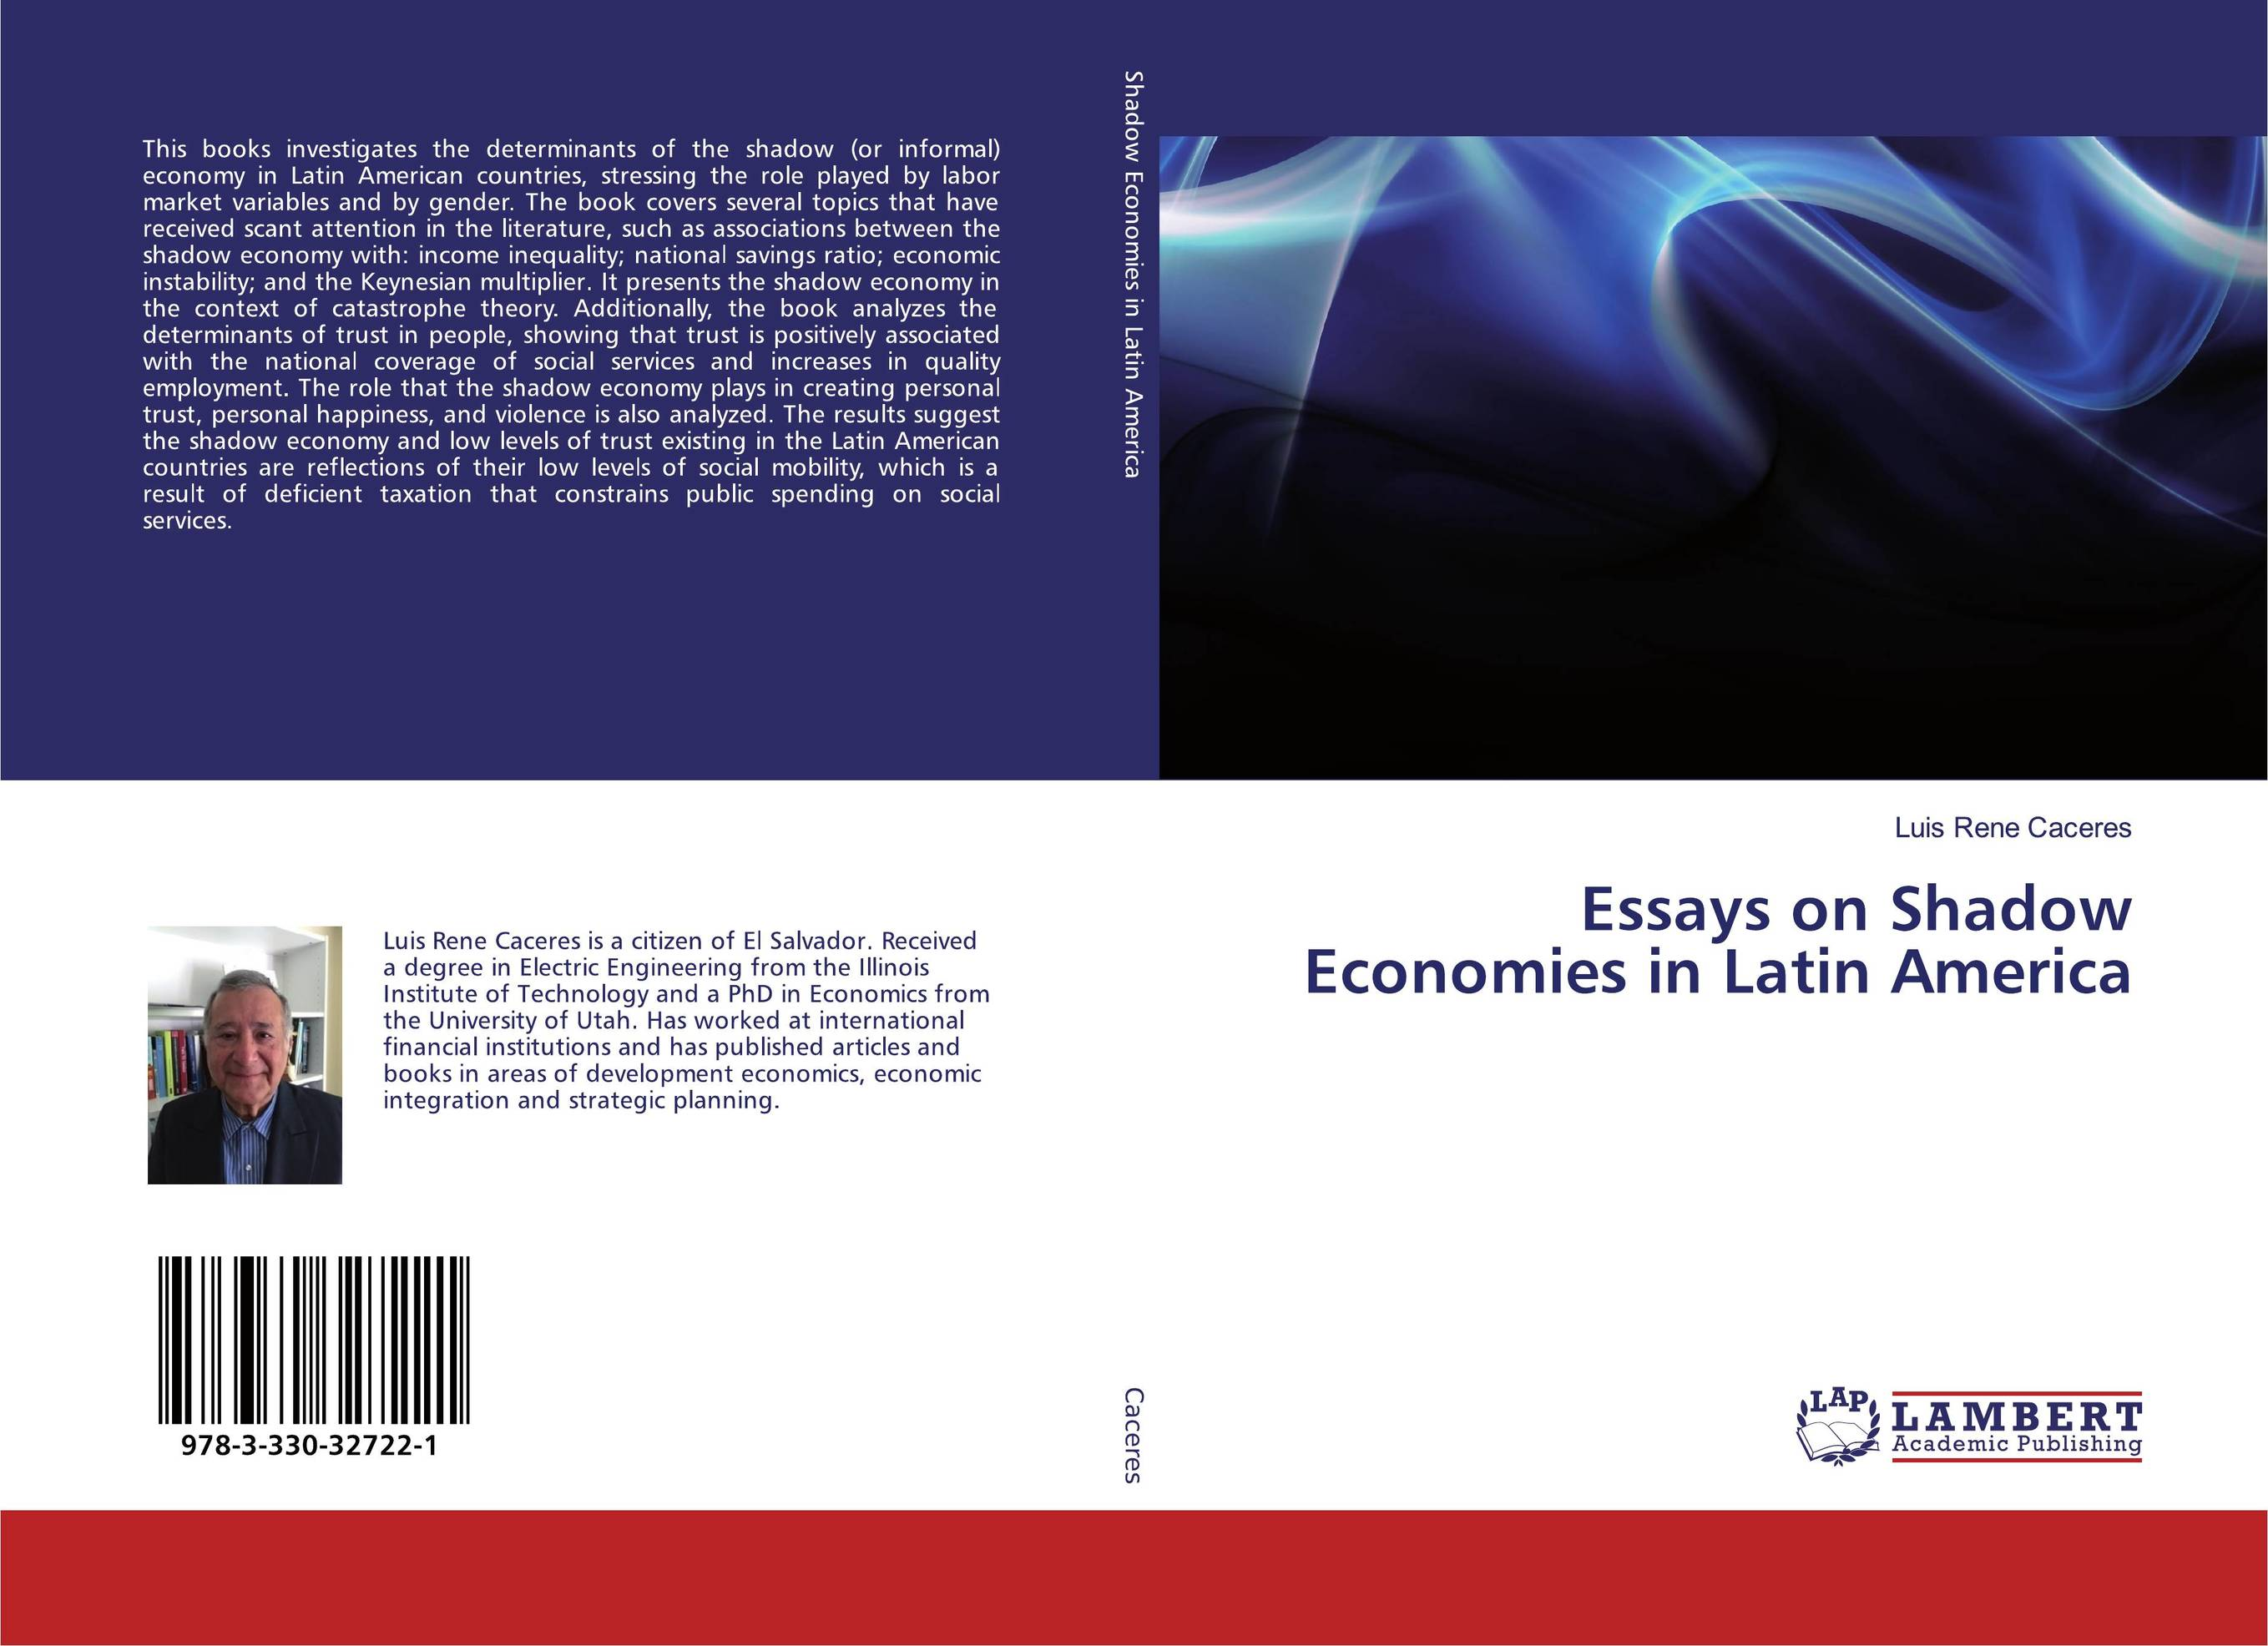 the role of taxation in an economy economics essay We argued that economists and policy makers alike overlook the role that indigenous institutions play in economic development we concluded that the informal institutions, which underlie formal institutions, cannot be imposed from above but must develop from the ground up.